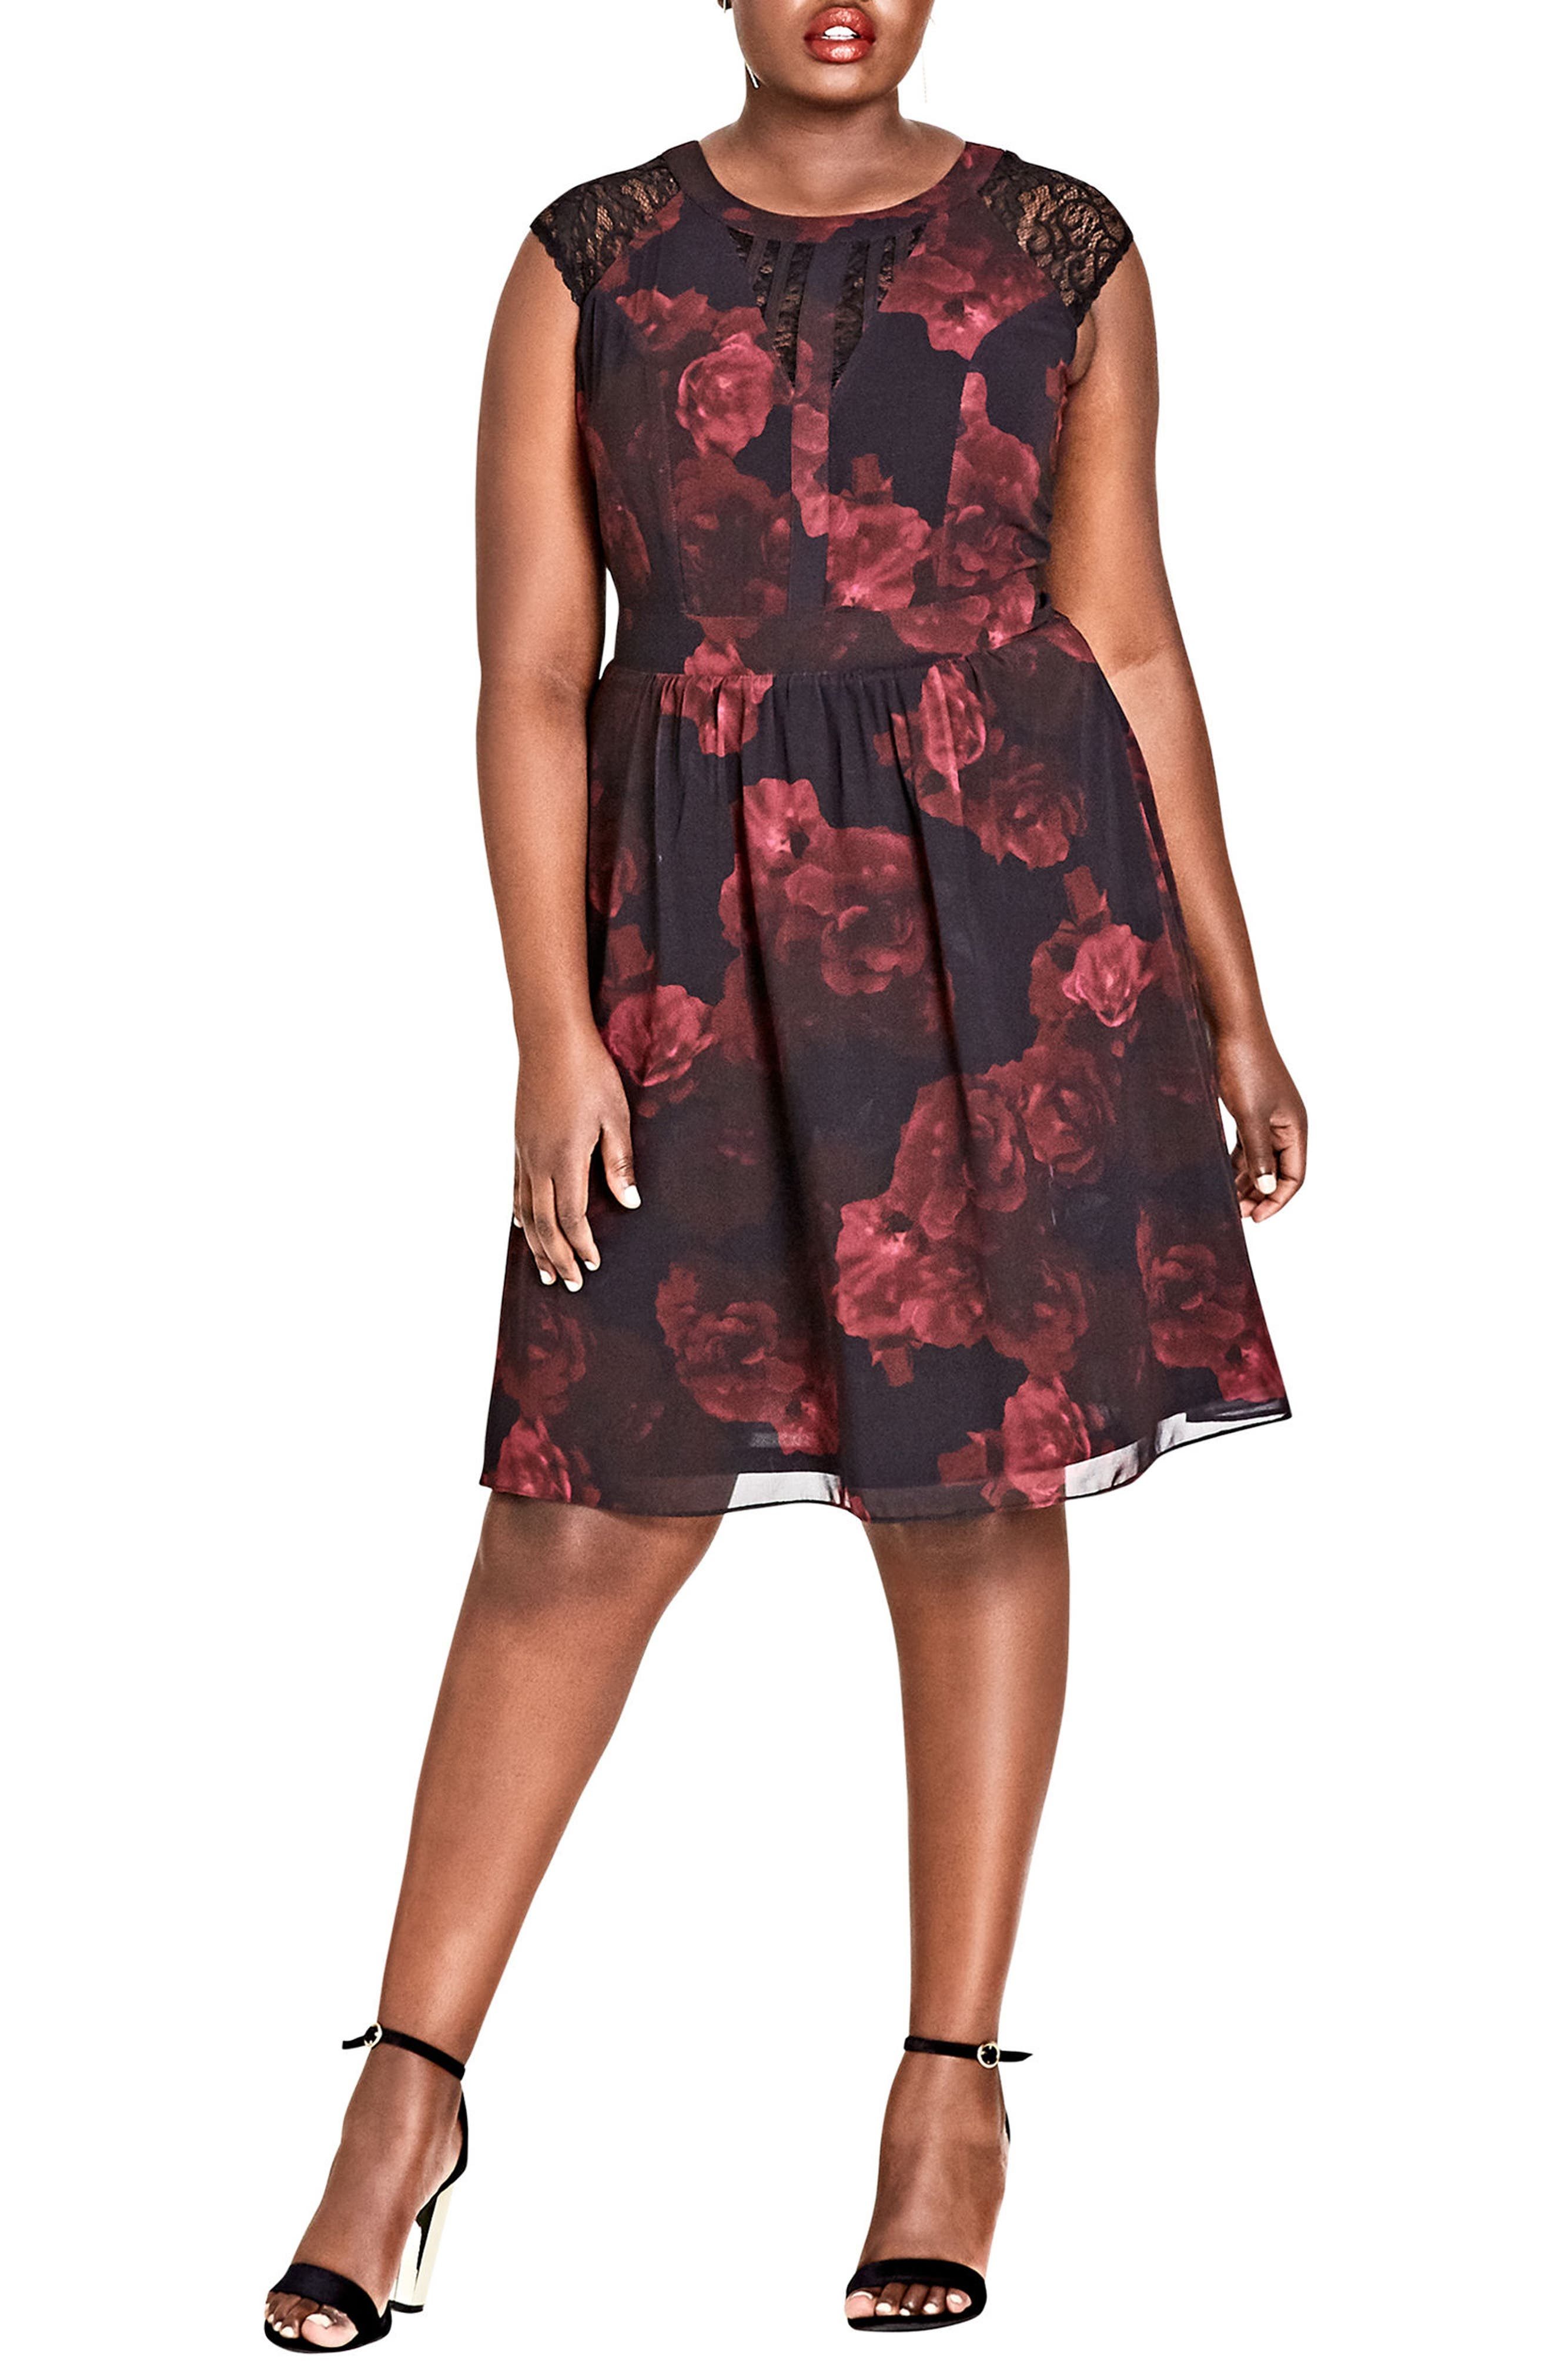 Crimson Rose Fit & Flare Dress,                             Main thumbnail 1, color,                             001